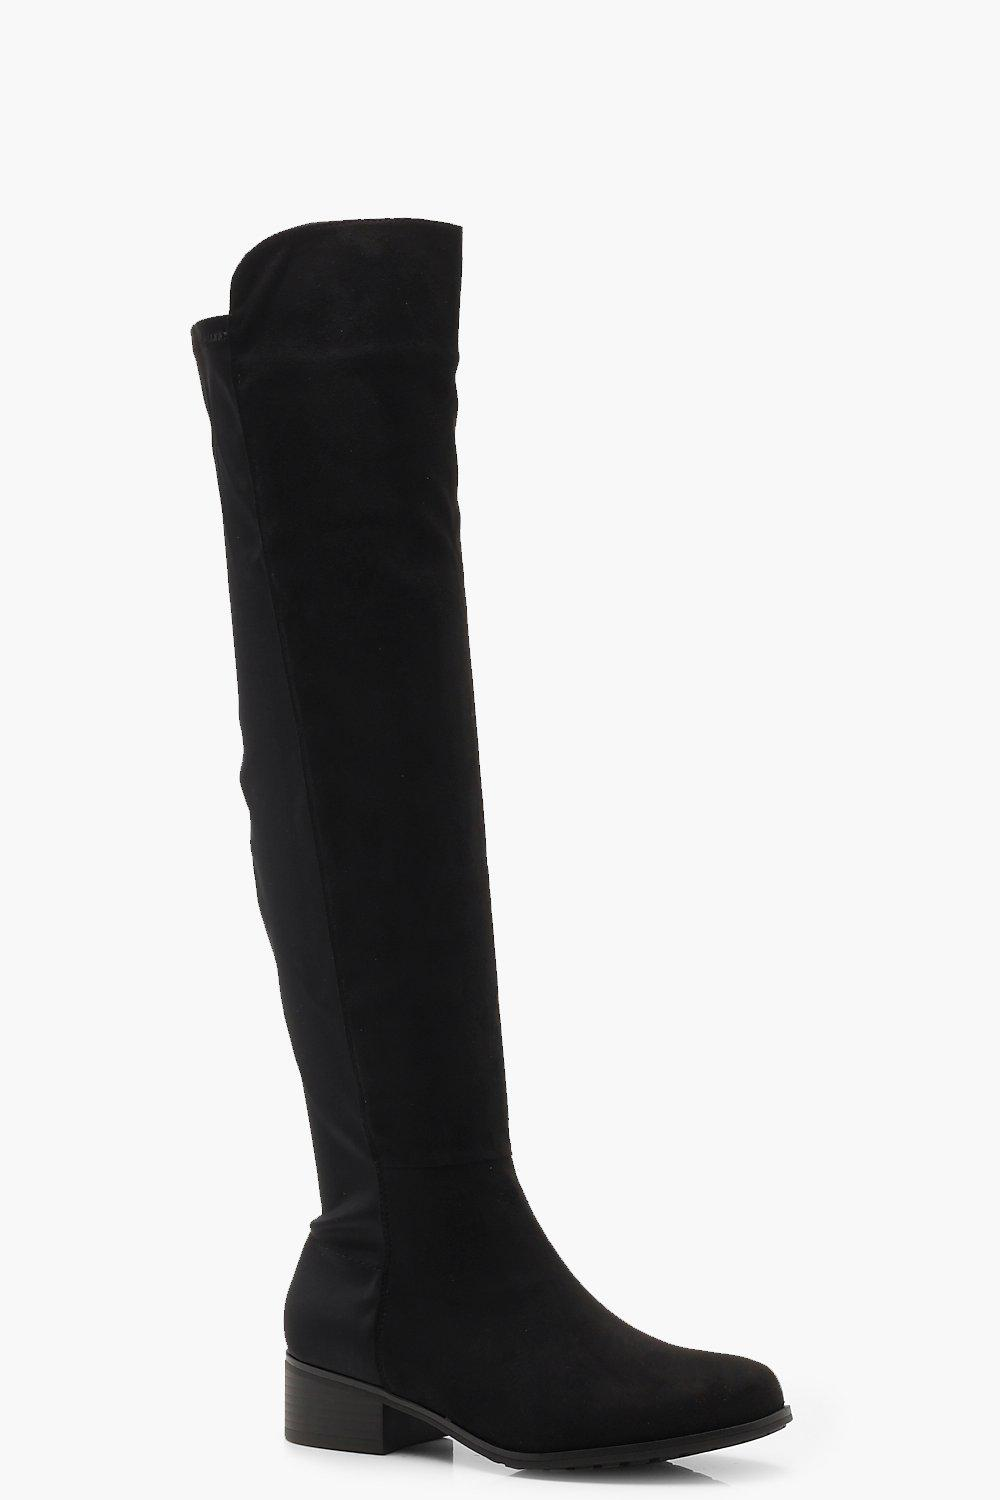 639d5c6c0bb Elastic Back Flat Over Knee Boots. Hover to zoom